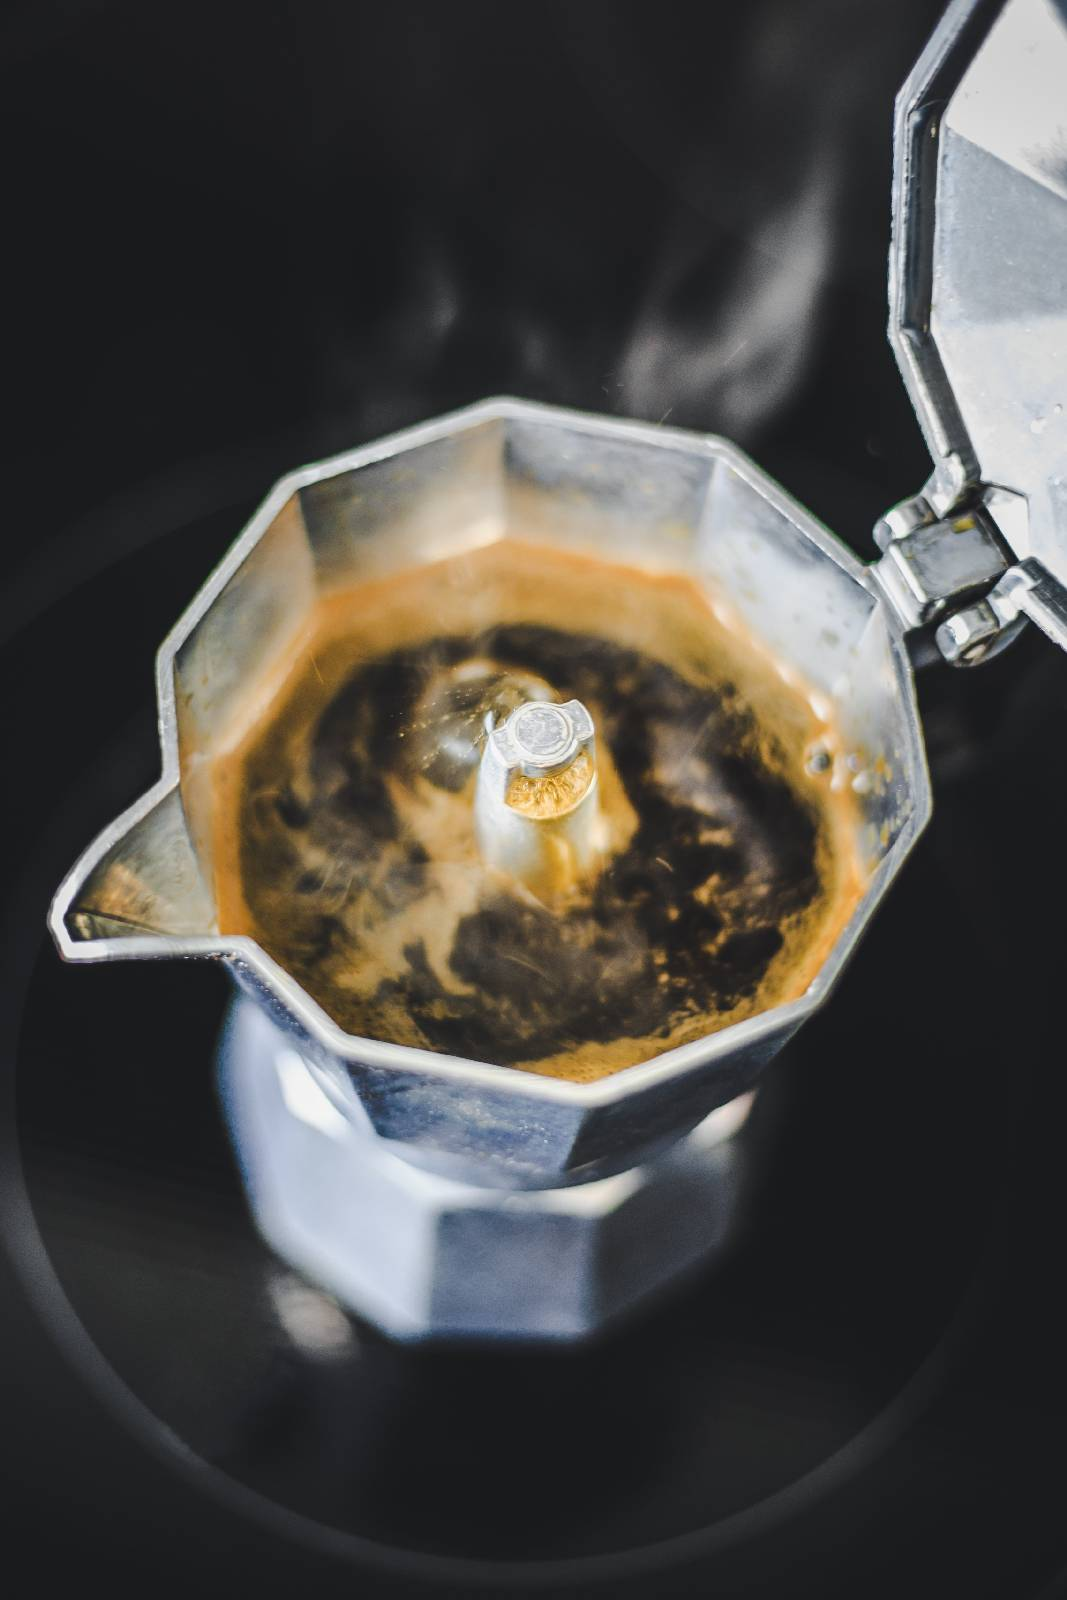 5 Ways To Make Coffee At Home - Stovetop Moka Pots